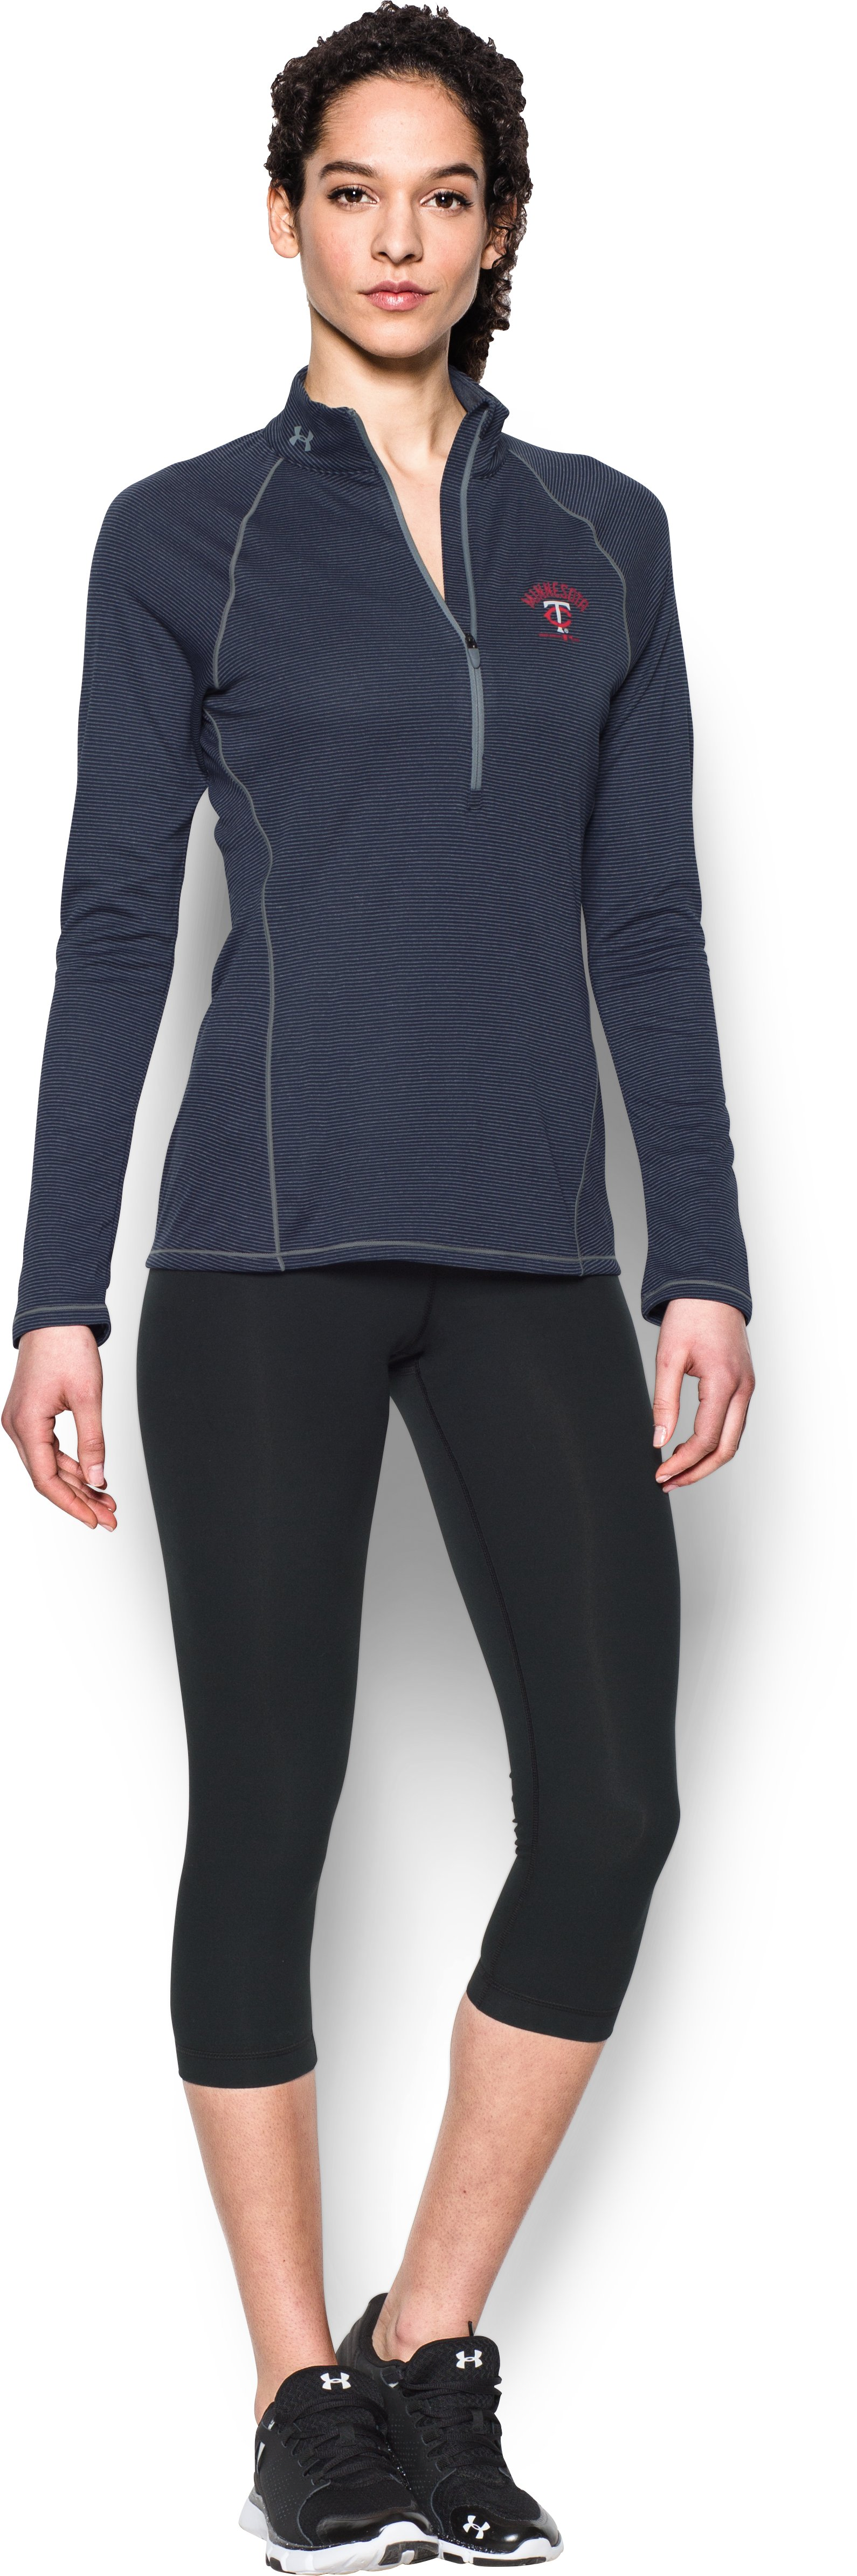 Women's Minnesota Twins UA Tech™ 1/2 Zip, Midnight Navy, zoomed image